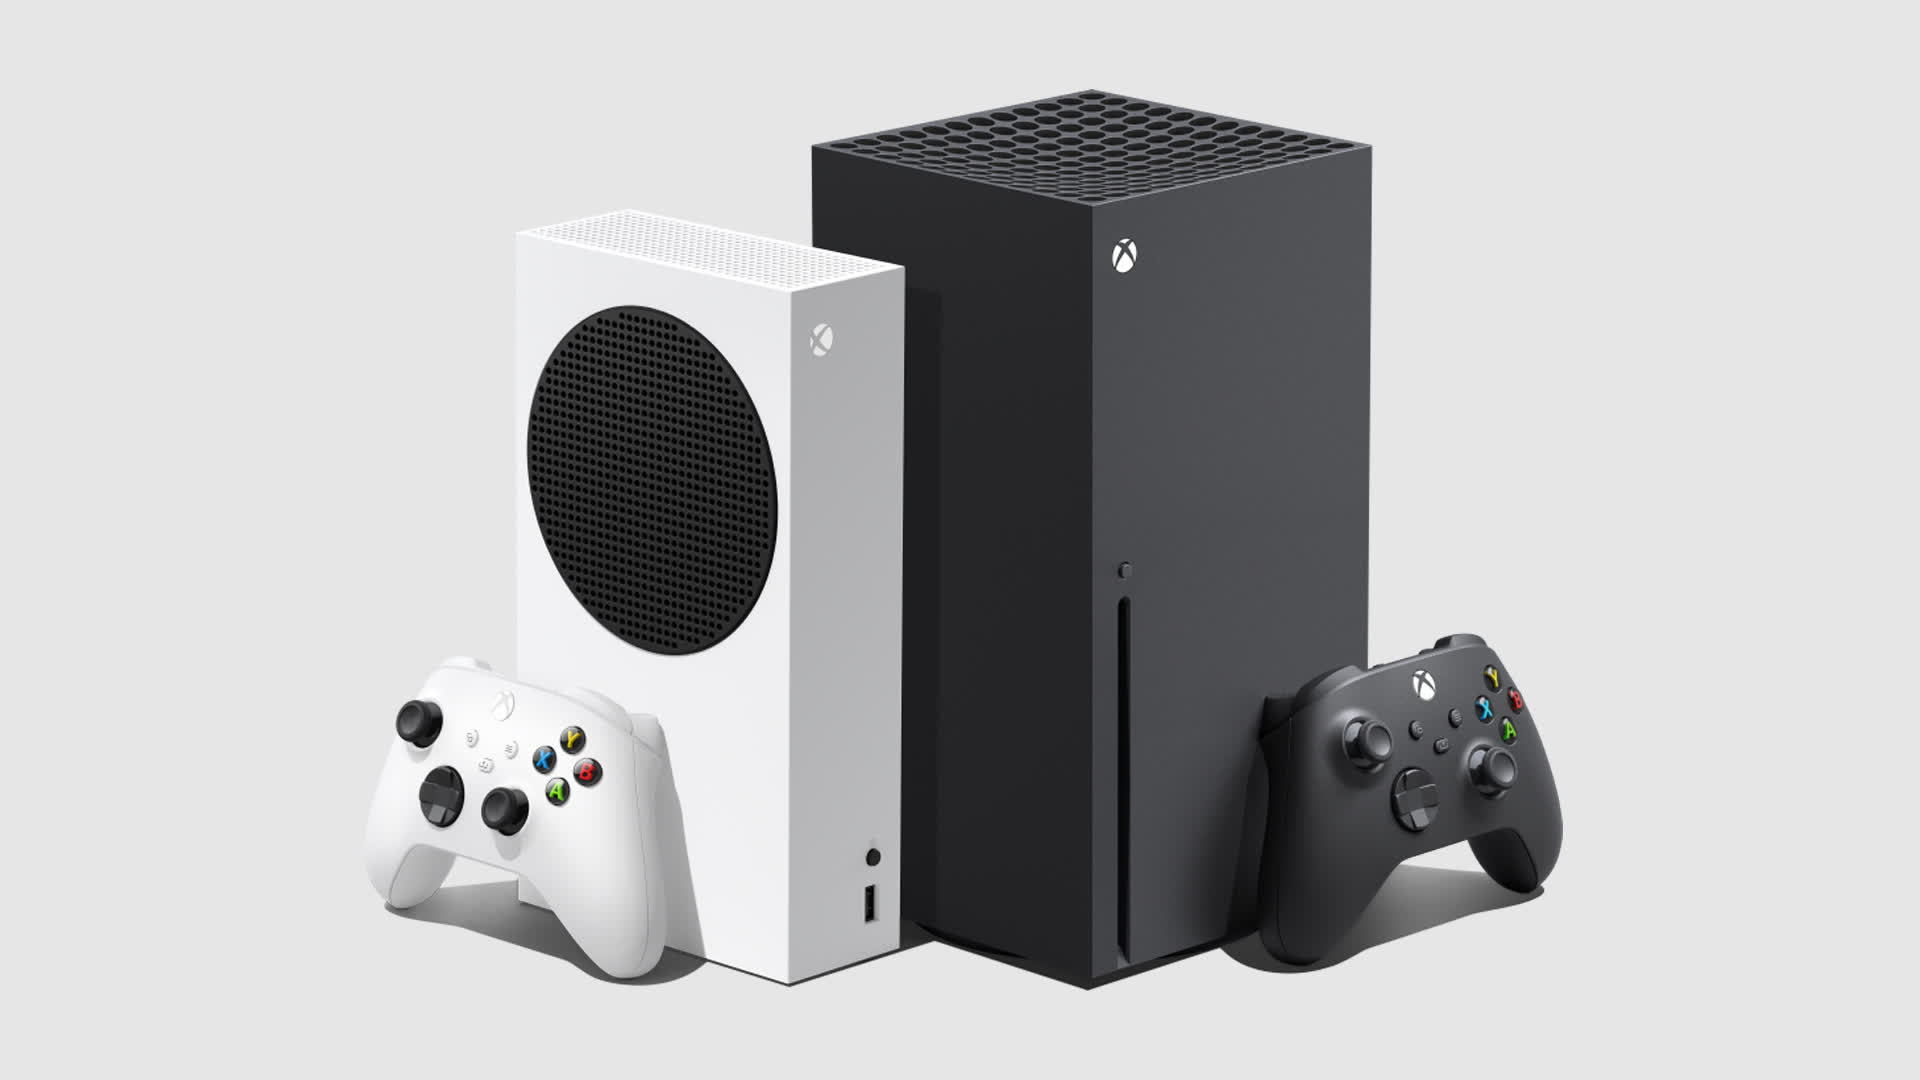 Xbox Series X|S external storage details confirmed: 128GB minimum and USB 3.0 required